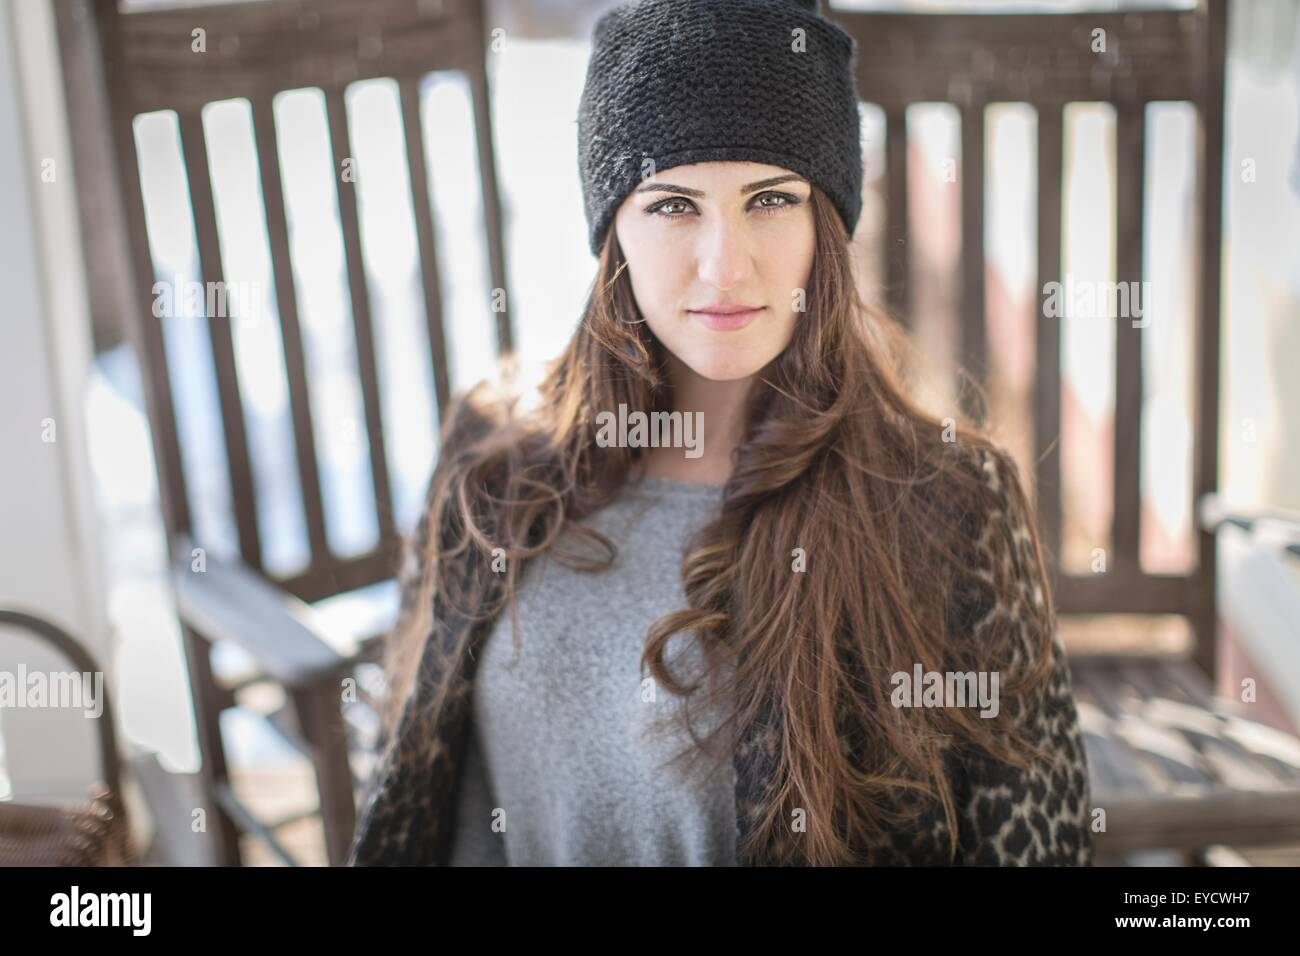 Portrait of young woman wearing knit hat - Stock Image